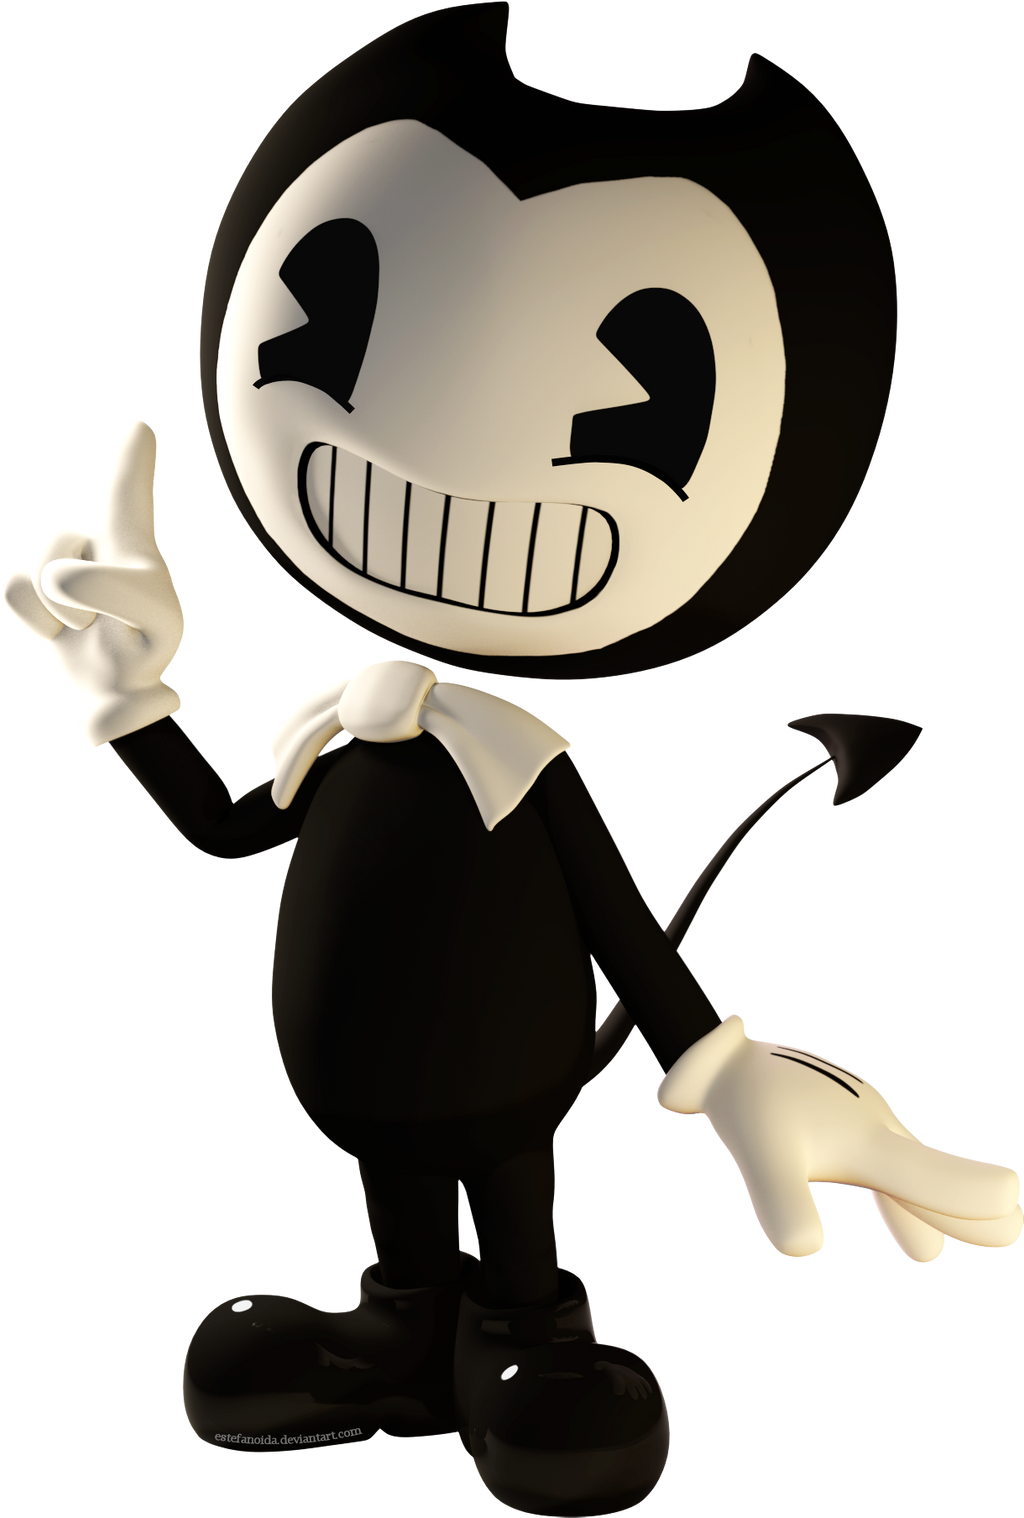 Bendy in 3D by Estefanoida on DeviantArt